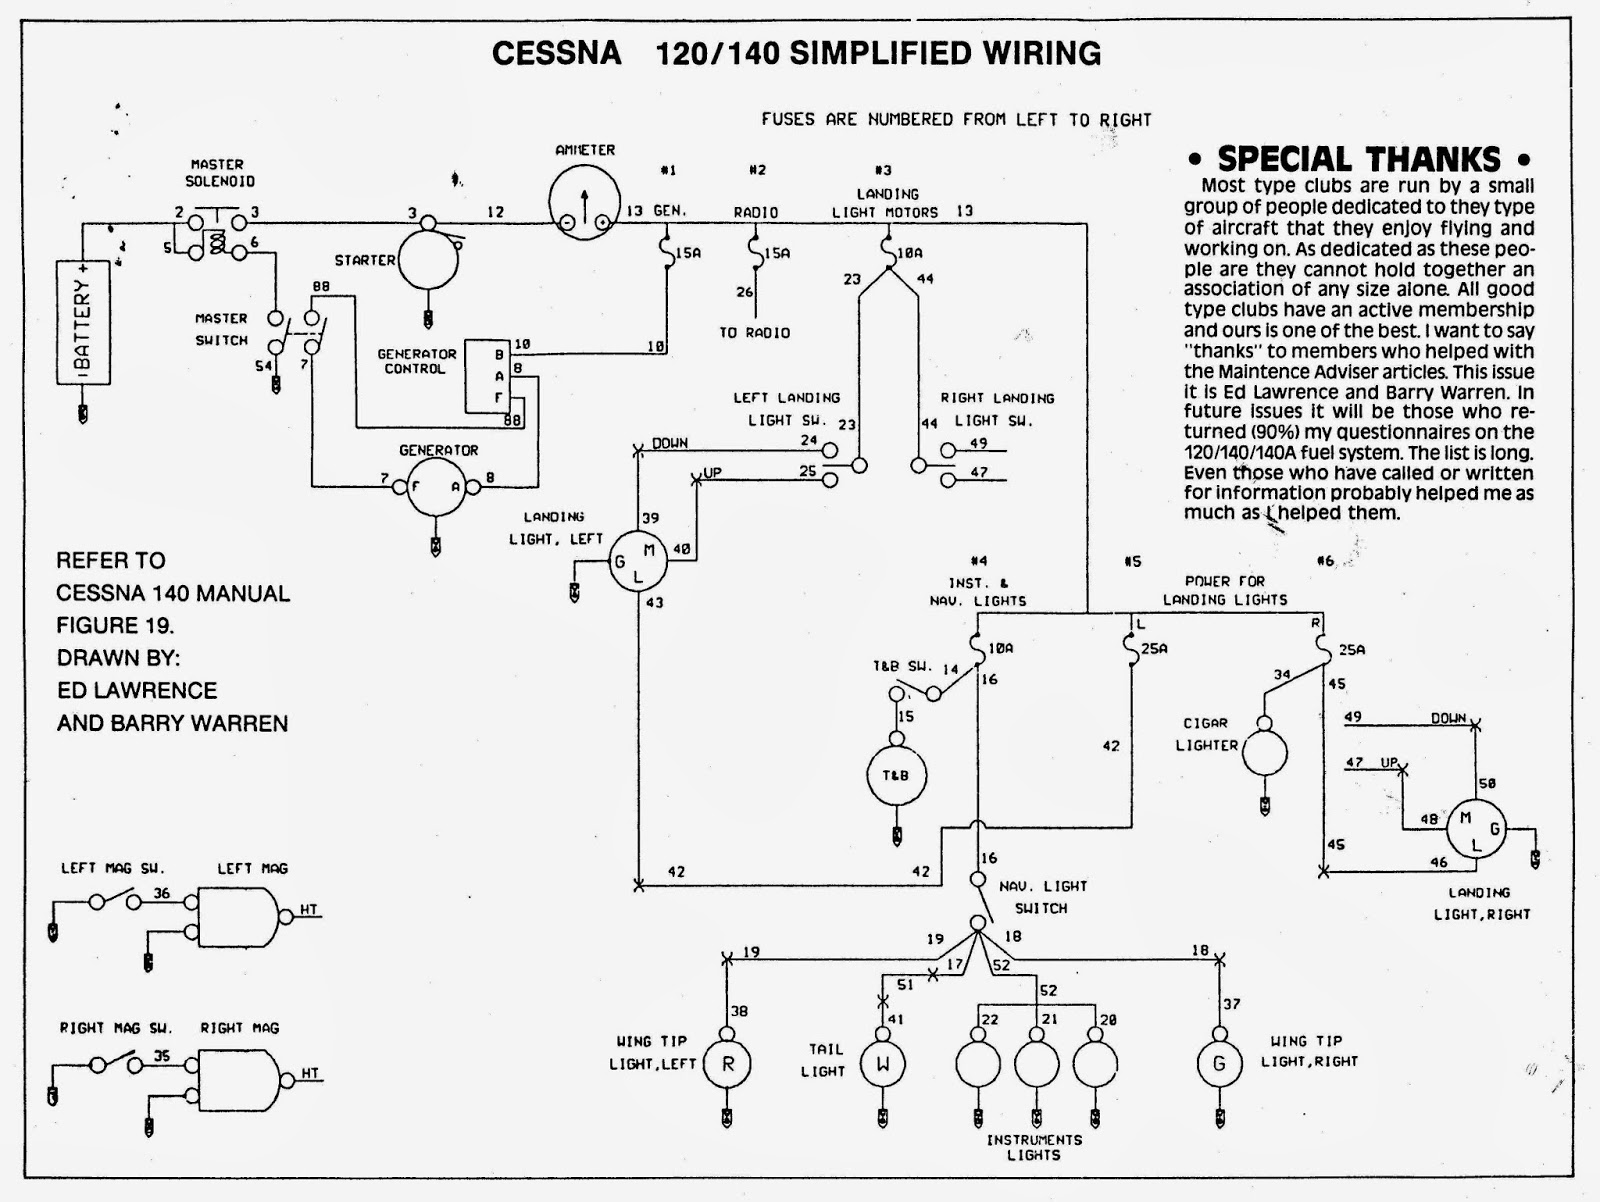 C 140+Simple+Wiring cessna 140 rebirth electrical loads & wiring cessna master switch wiring diagram at crackthecode.co